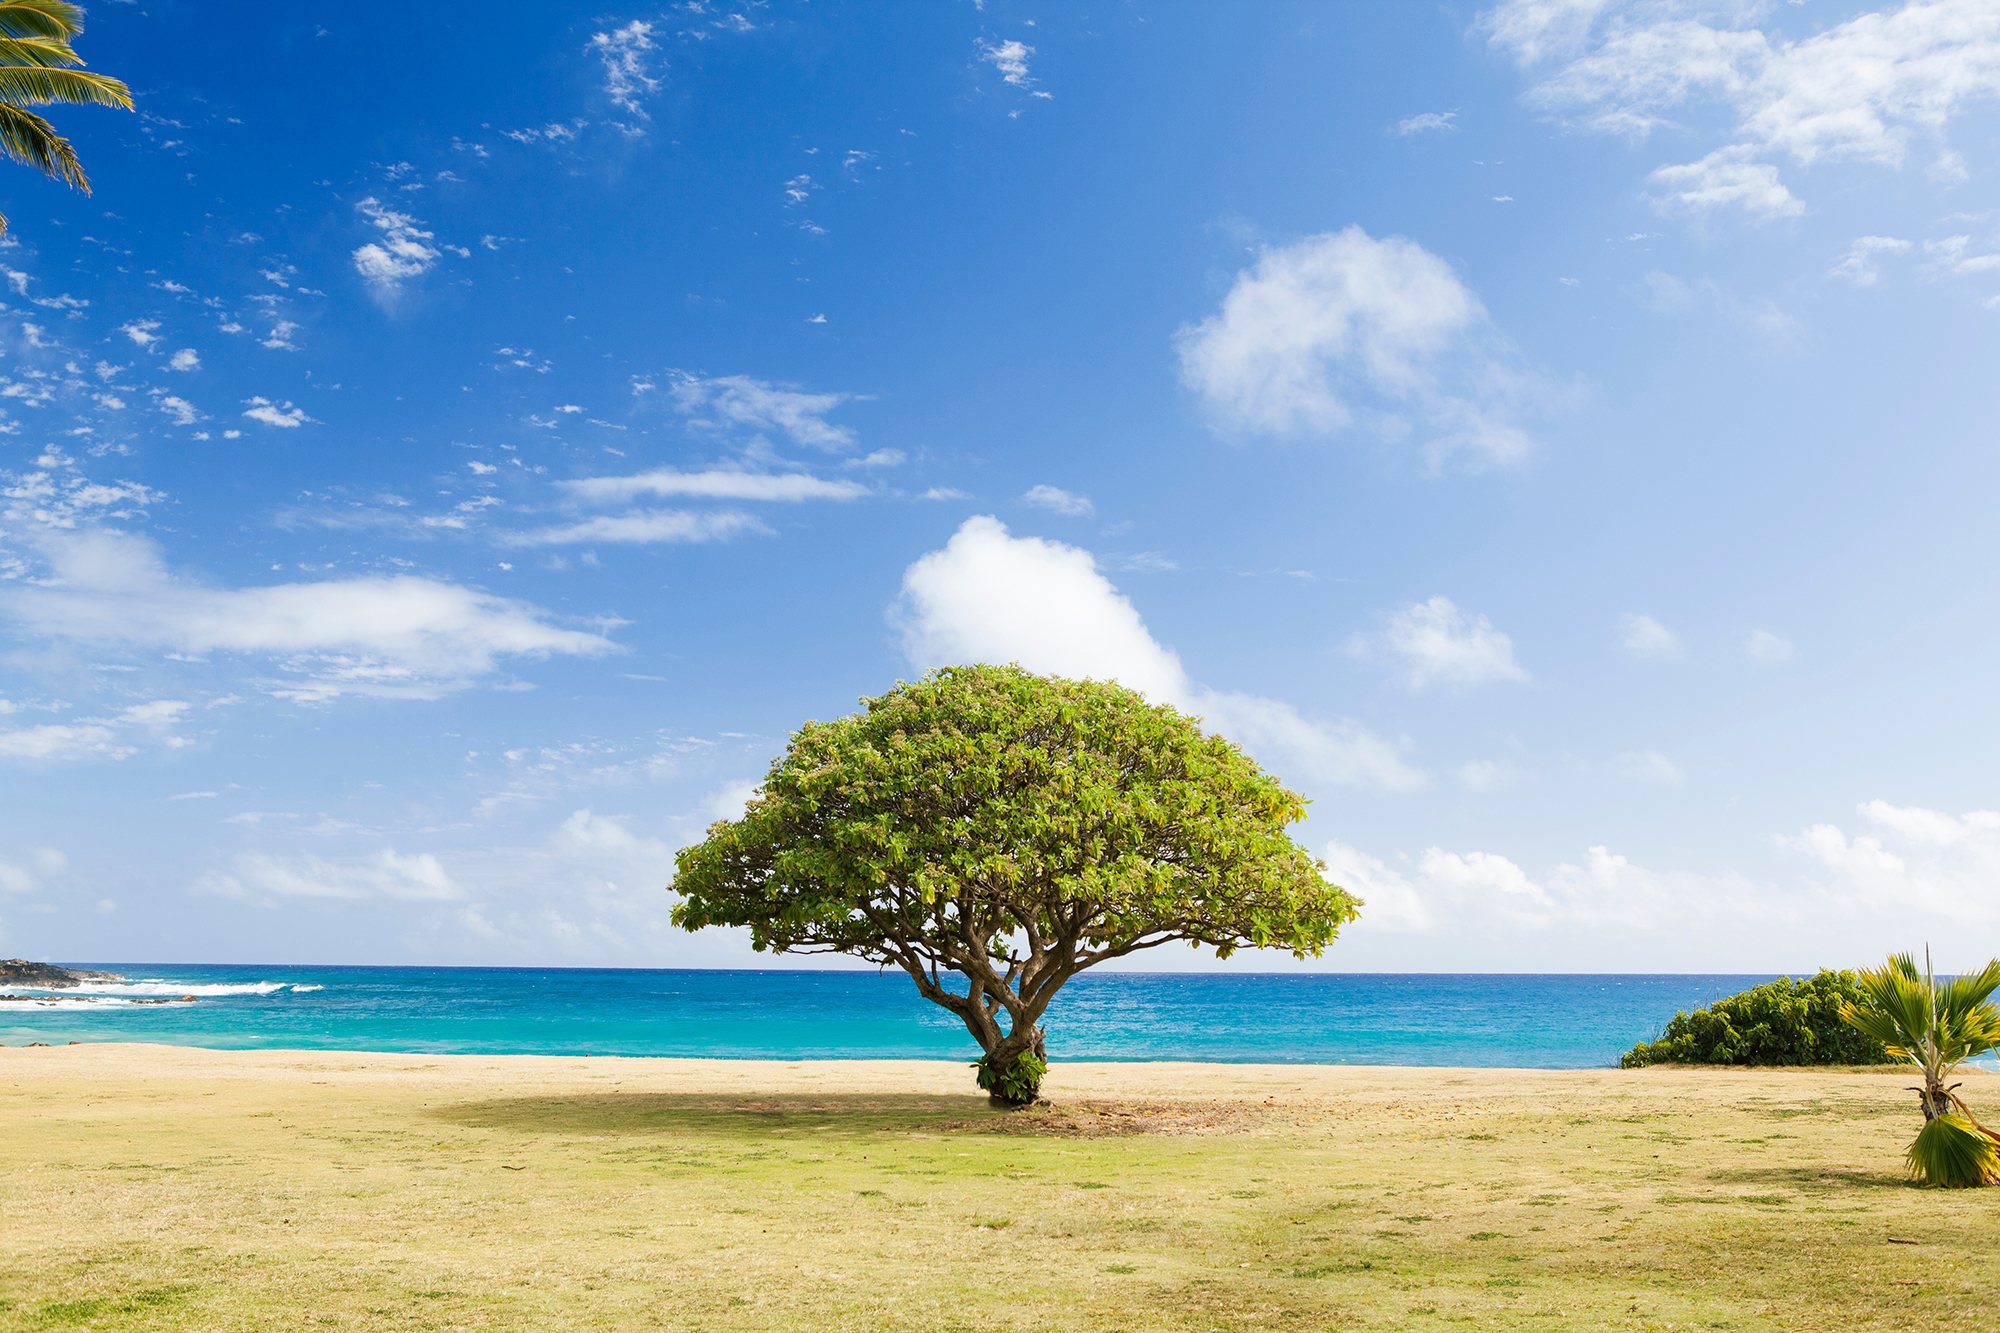 His Encouragement for Your Thursday: Like a tree planted by the water